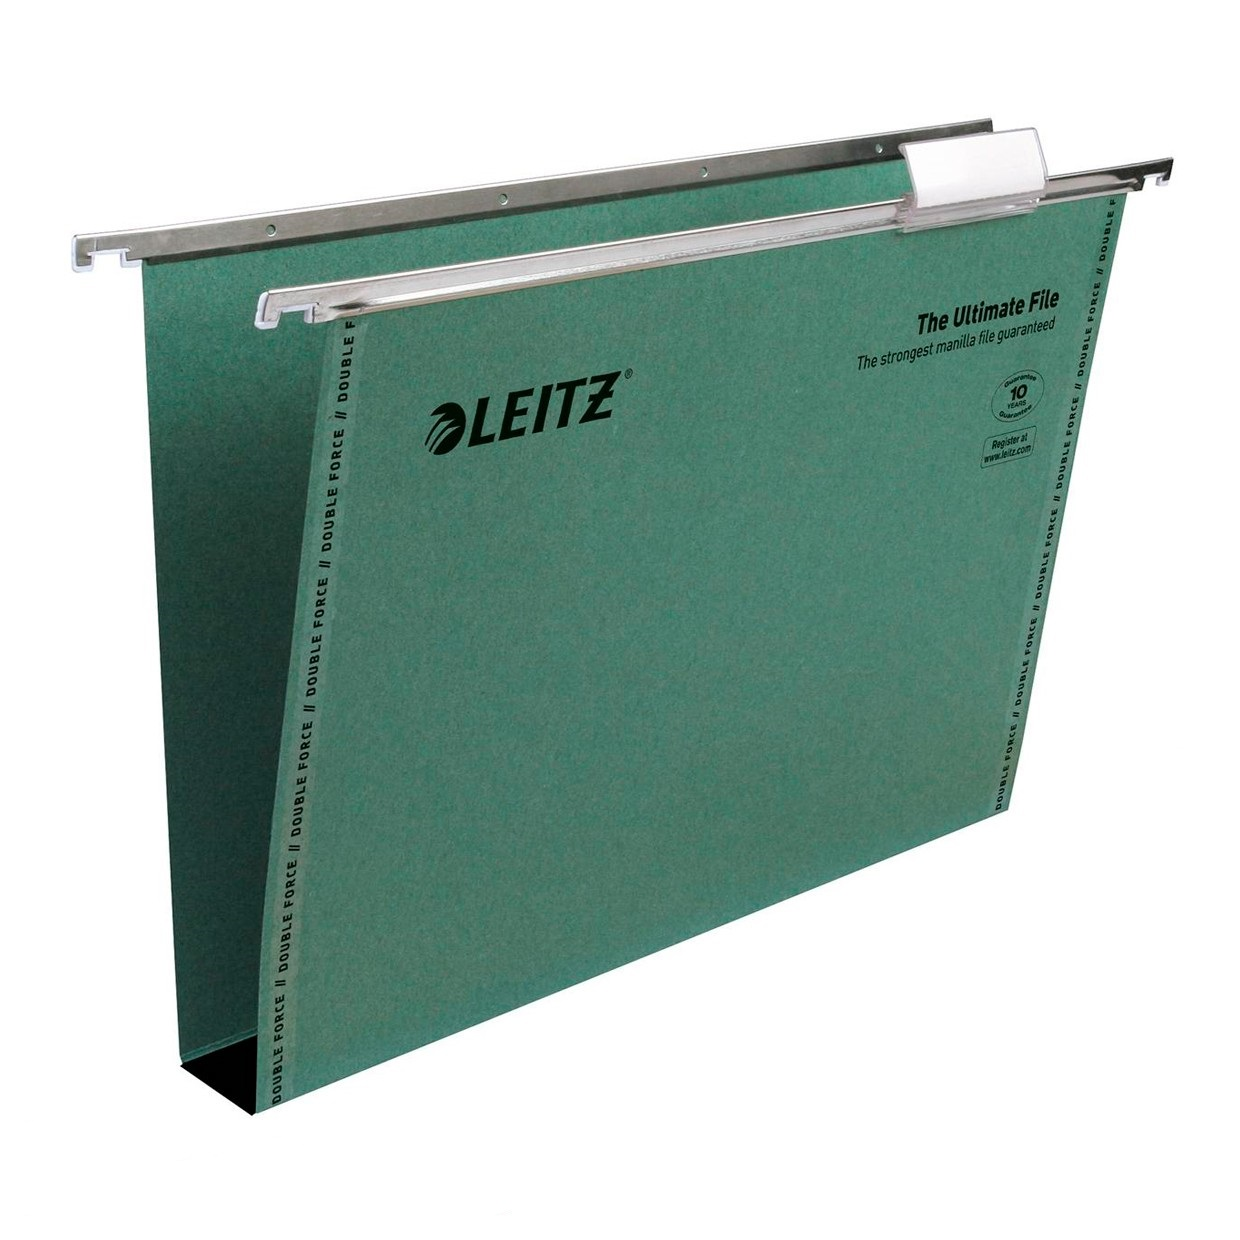 Suspension File Leitz Ultimate Suspension File F/S Green 17450055 (PK50)